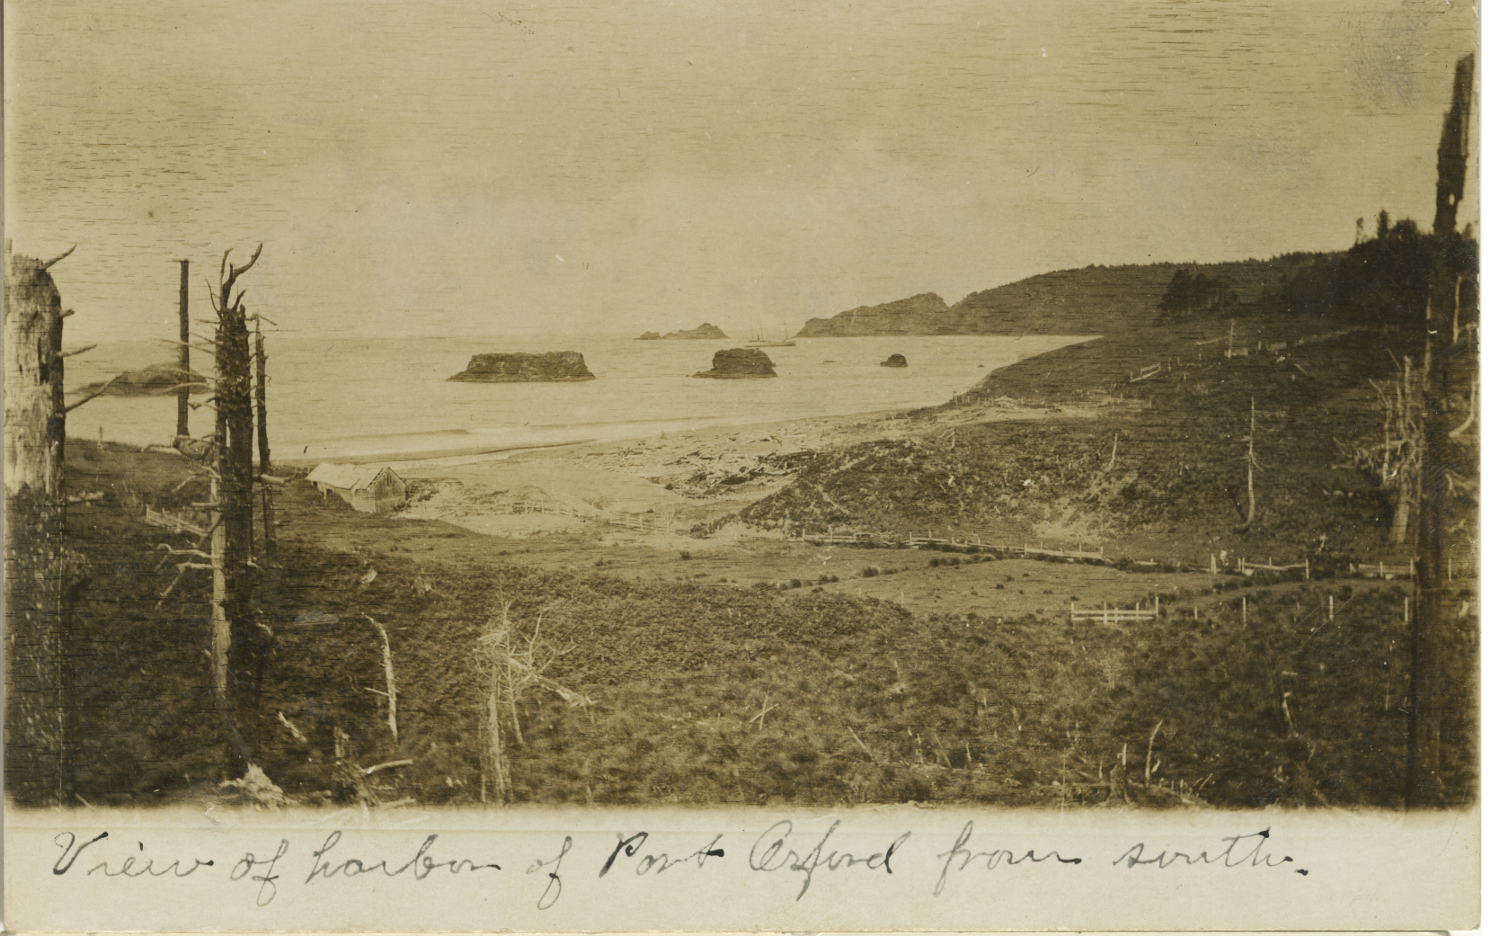 View of Harbor of Port Orford from South